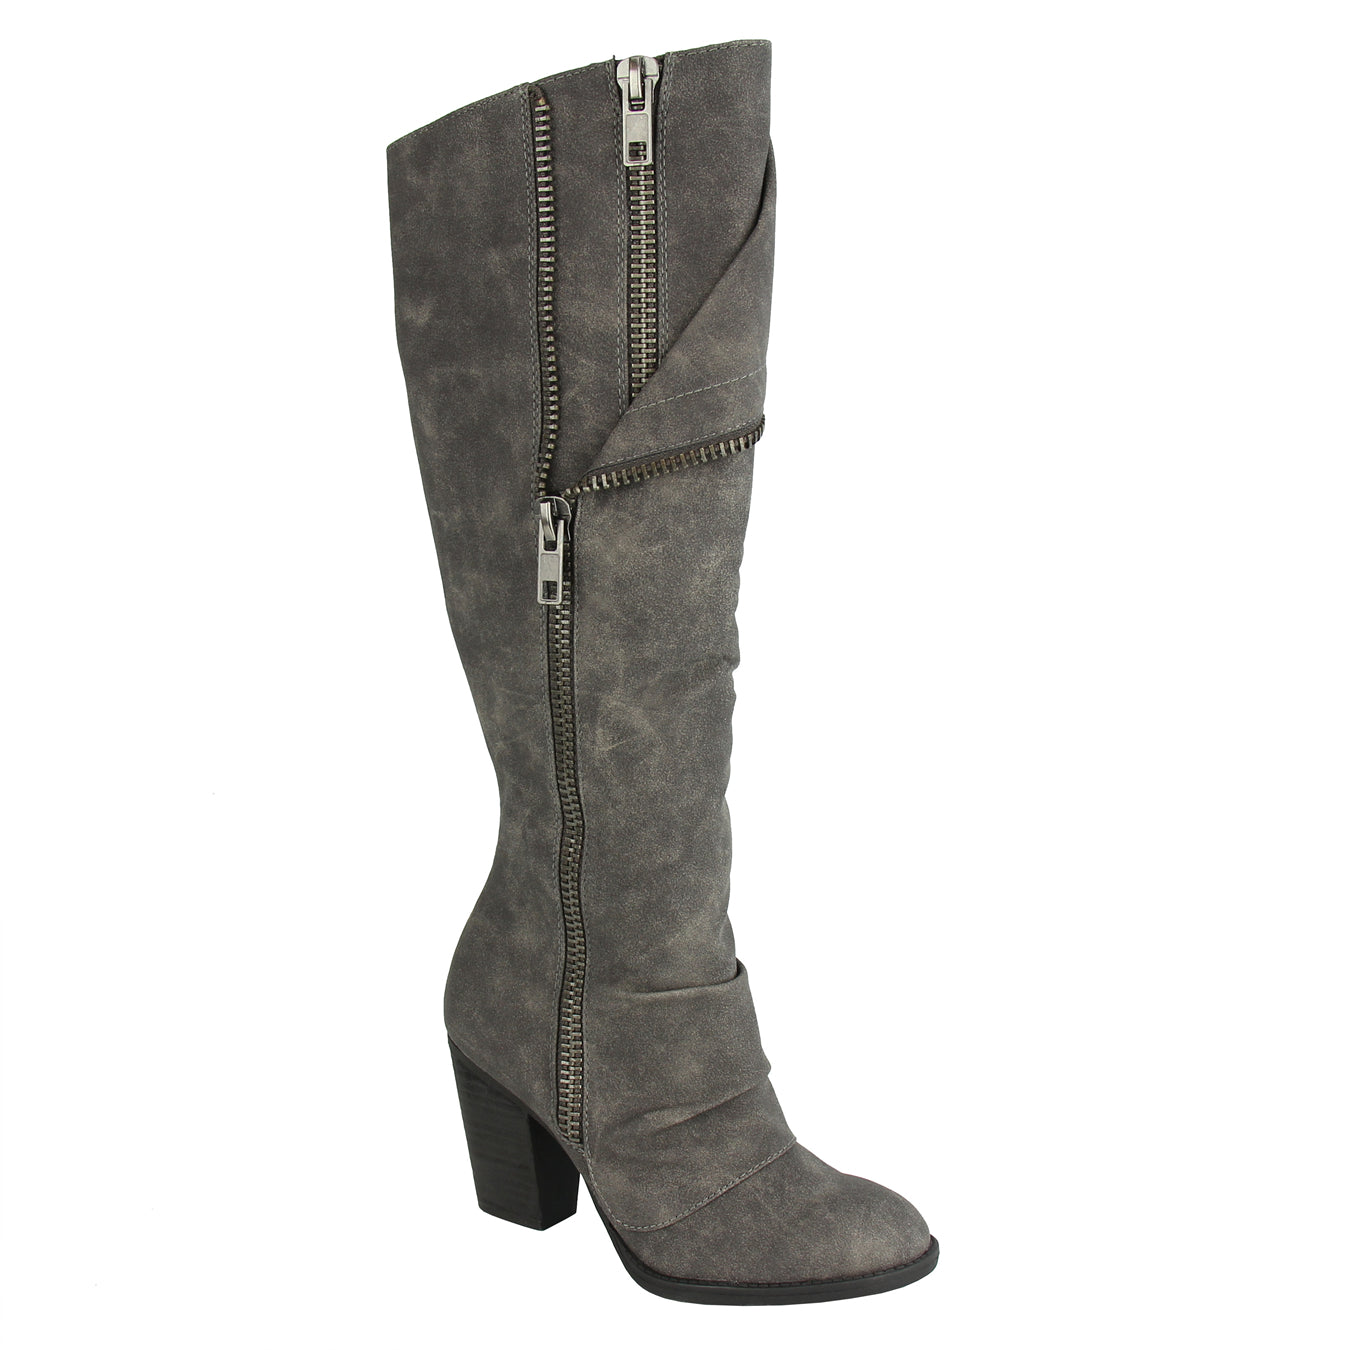 Not_Rated_Valda_women's_tall-boot_fold-over-flap_zipper_stacked-heel-3.5in.